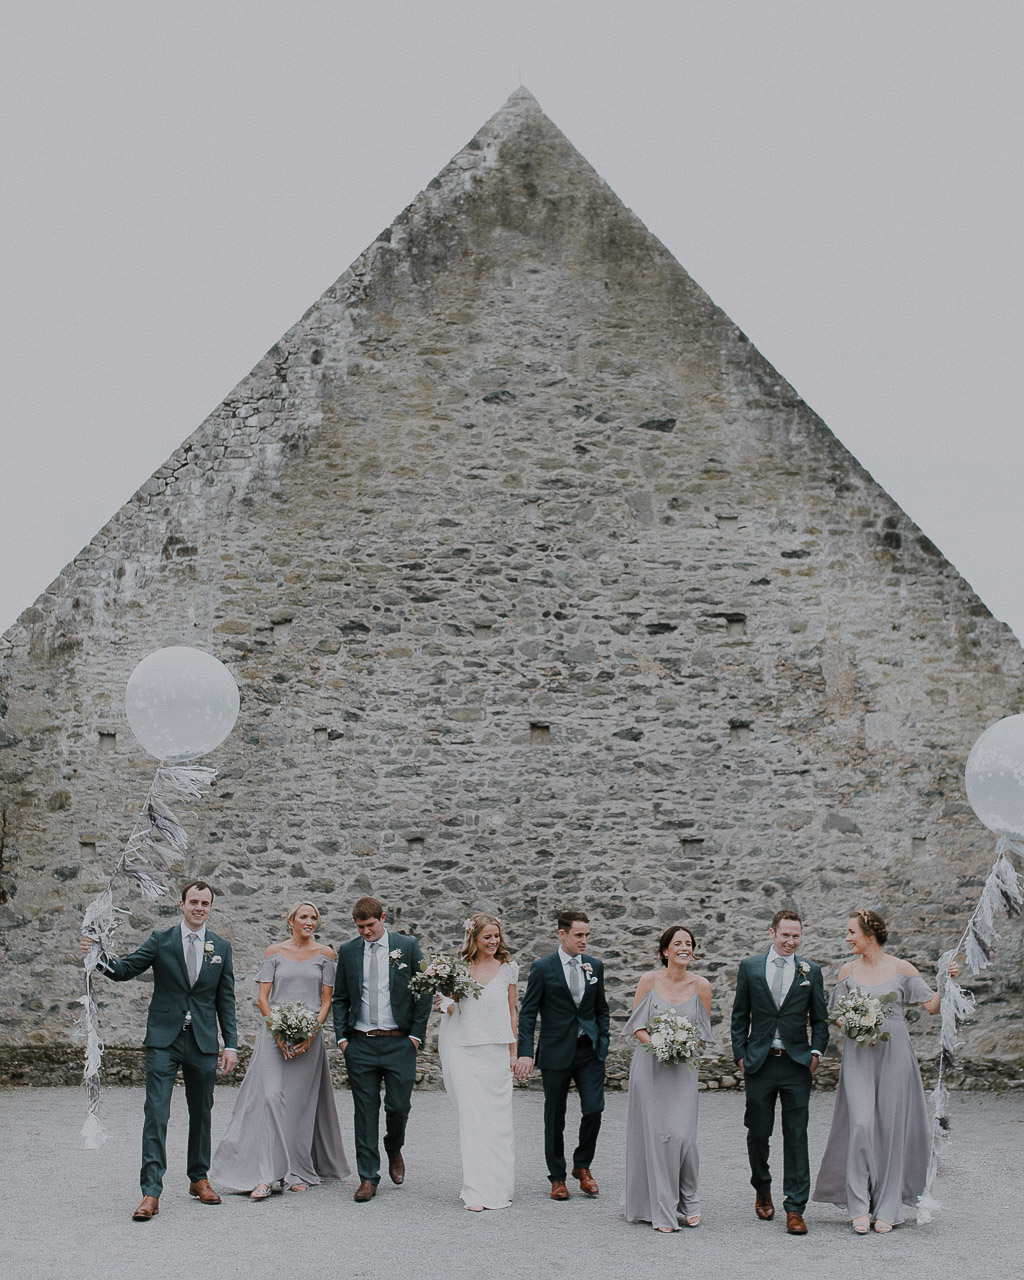 documentary-wedding-alternative-photographer-ireland-katie-farrell-cool-wedding-photographer-ireland-katie-farrell-photography-400